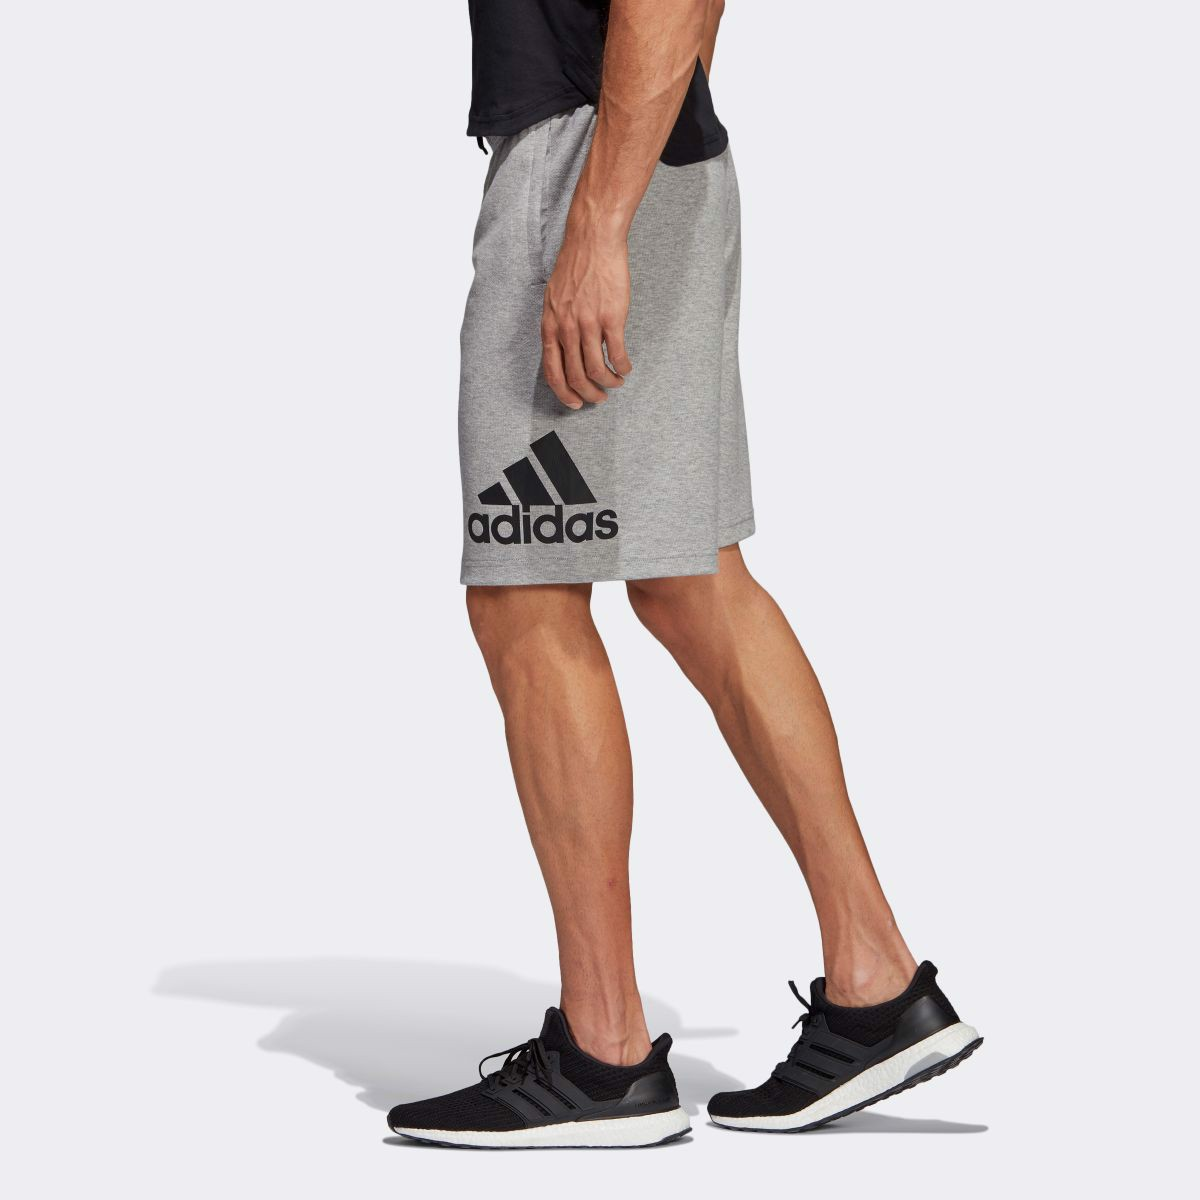 QUẦN ADIDAS HAVE MUST BADGE DT9948